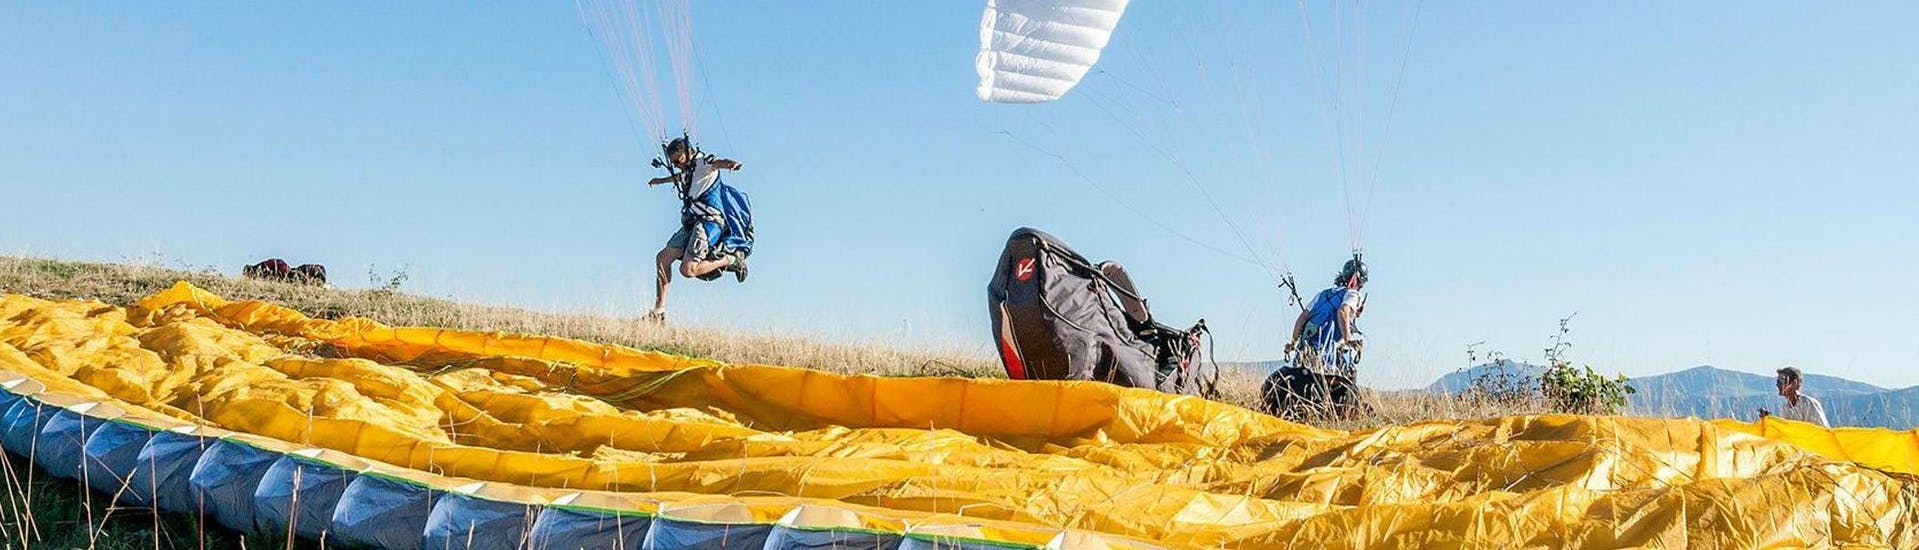 A person is coming back from his Tandem Paragliding in Verdon -Sensation Ascendance activity with Haut Les Mains.